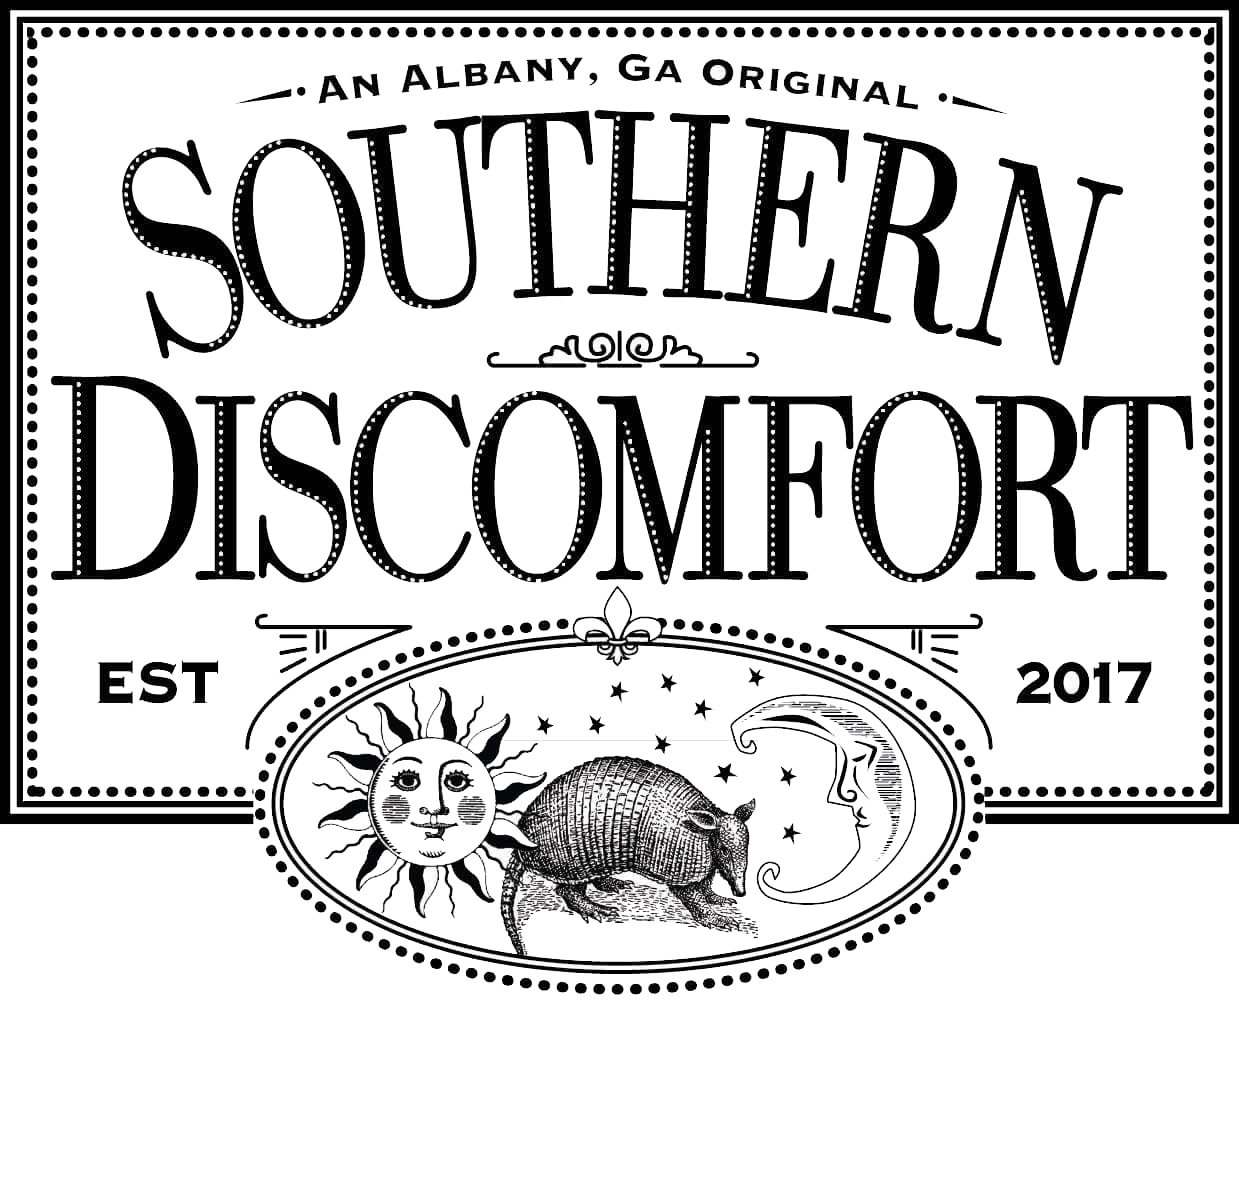 Southern Discomfort Race